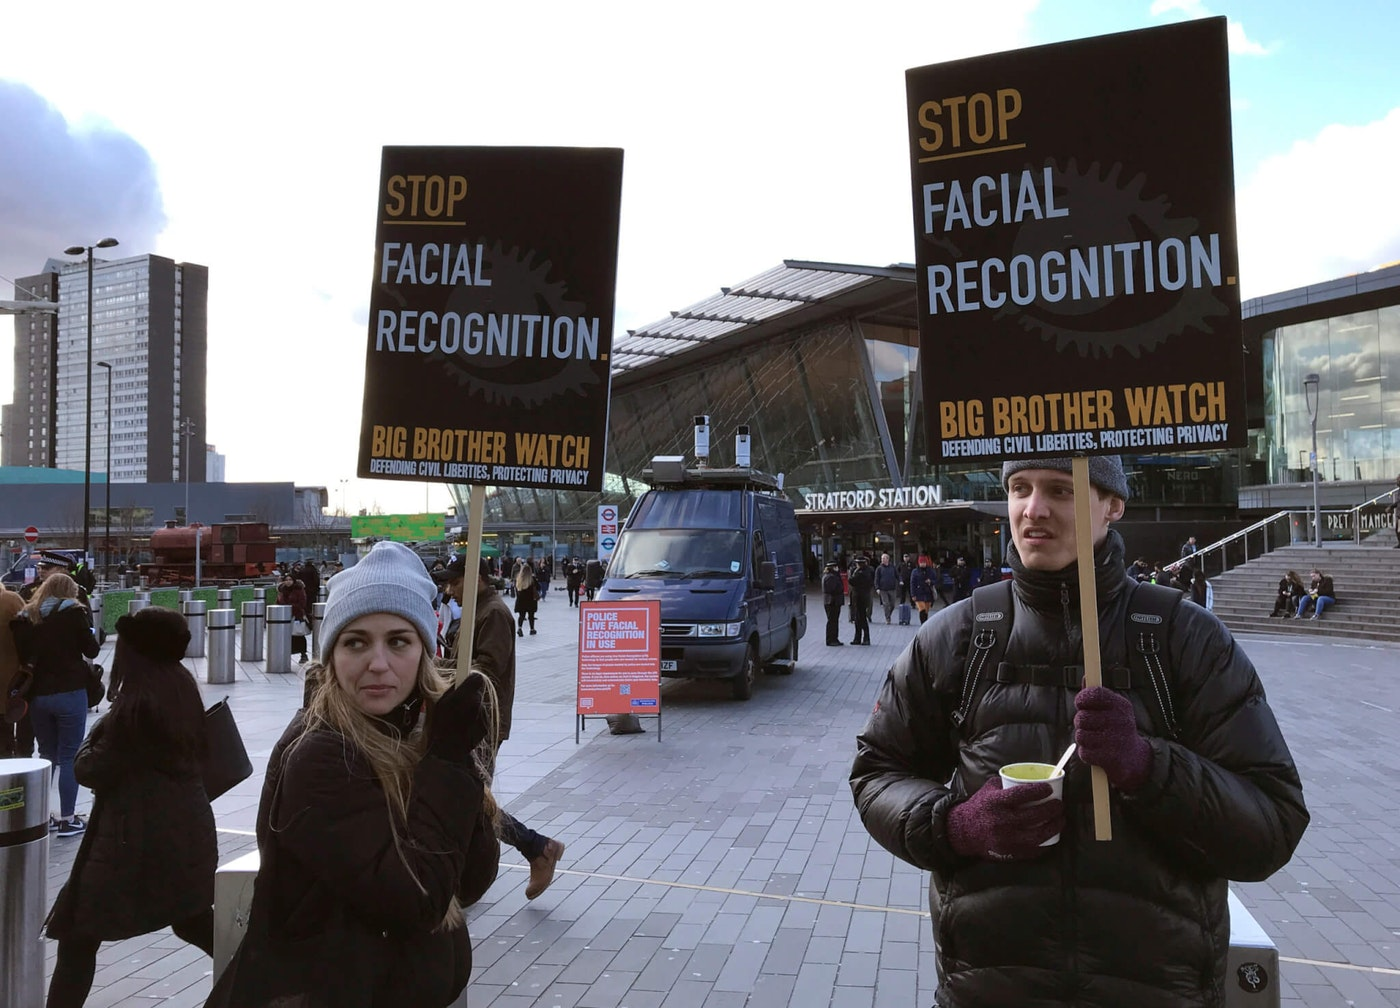 In this Feb. 11, 2020, file photo, Silkie Carlo, left, demonstrates in front of a mobile police facial recognition facility outside a shopping centre in London. A Black man who says he was unjustly arrested because facial recognition technology mistakenly identified him as a suspected shoplifter is calling for a public apology from Detroit police. And for the department to abandon its use of the controversial technology. (AP Photo/Kelvin Chan, File)